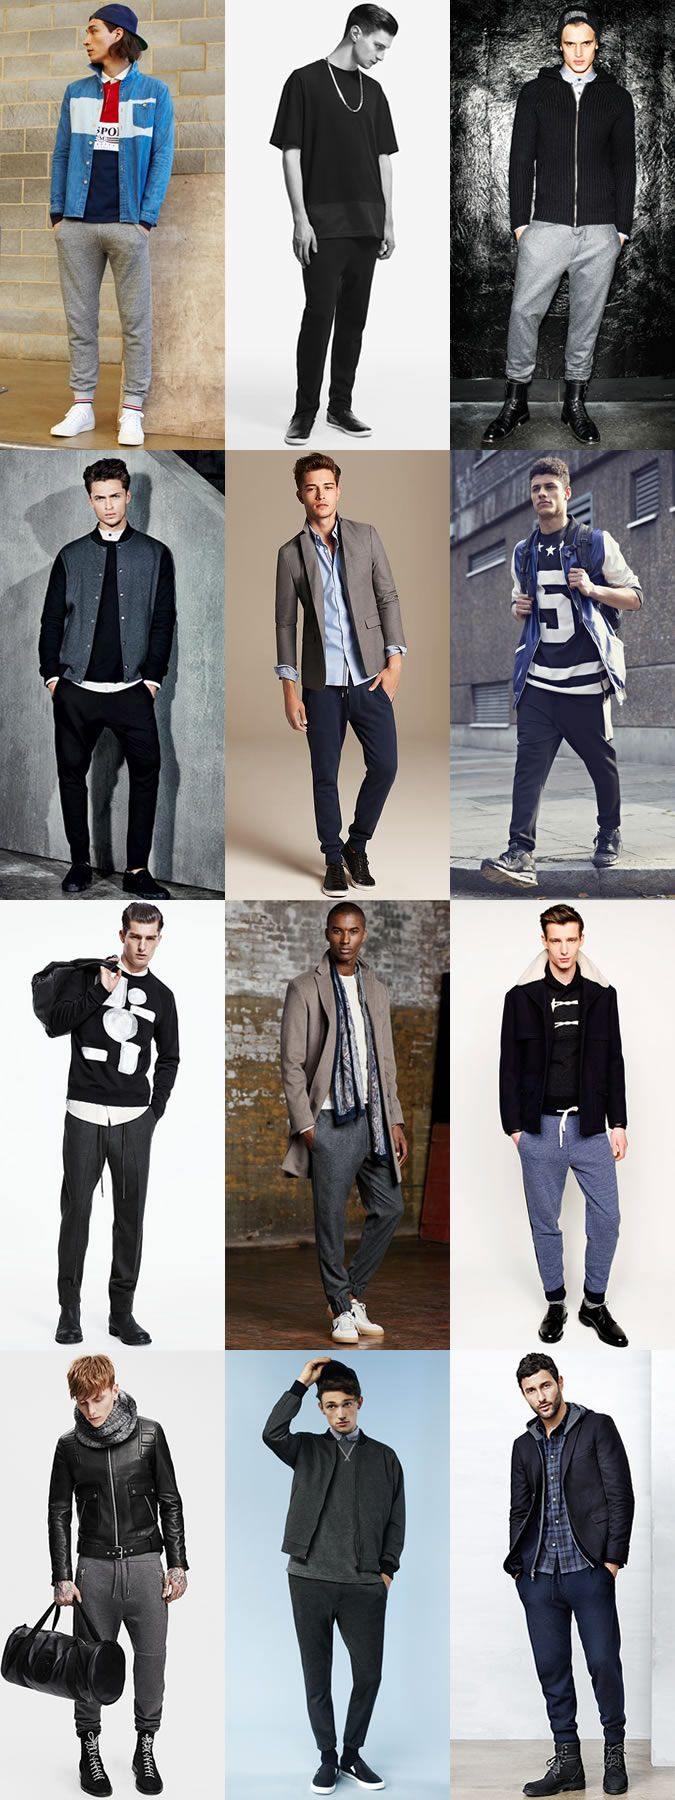 Men's 2014 Autumn/Winter Sporty Street Style : The Track Pant Lookbook Inspiration